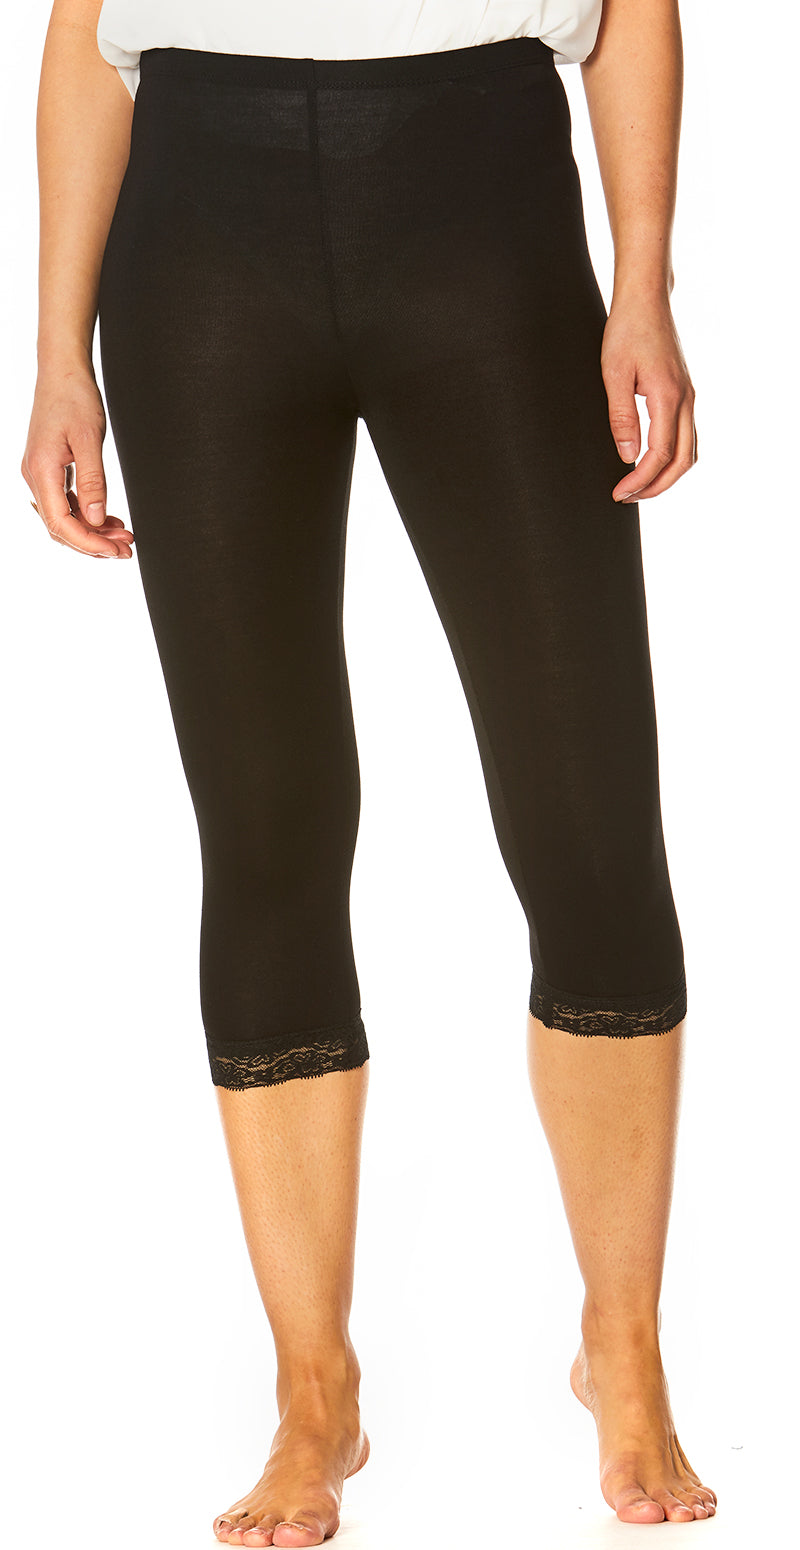 Sort capri leggings med blonde